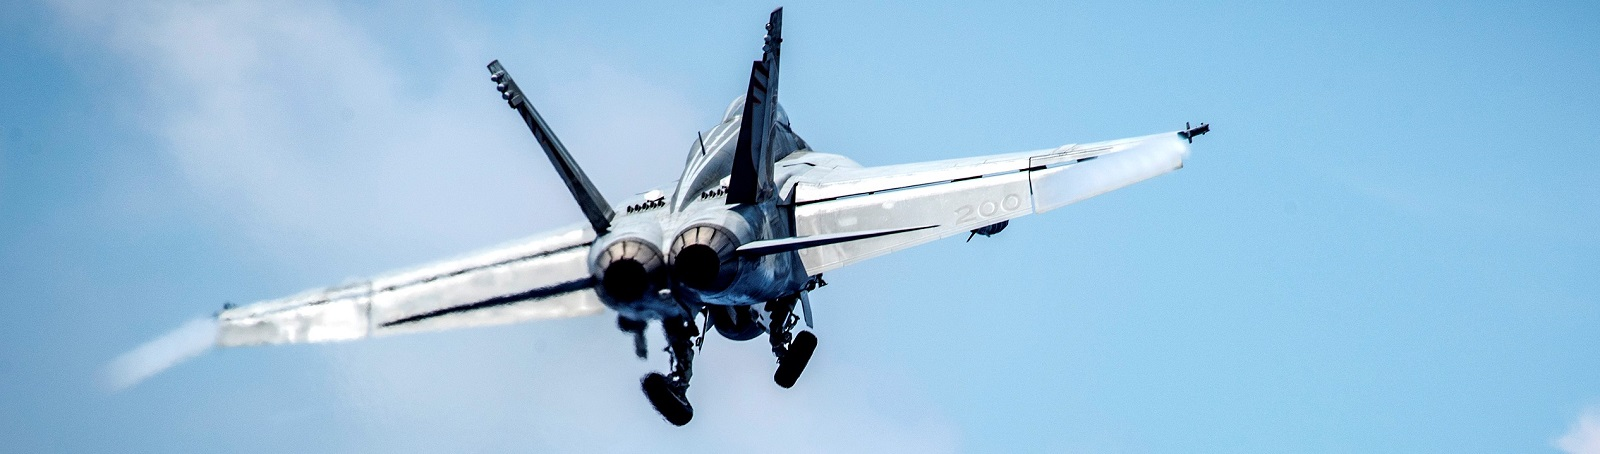 A US F-18 Super Hornet shot down a Syrian government SU-22 overnight (Photo: US Dept of Defense)